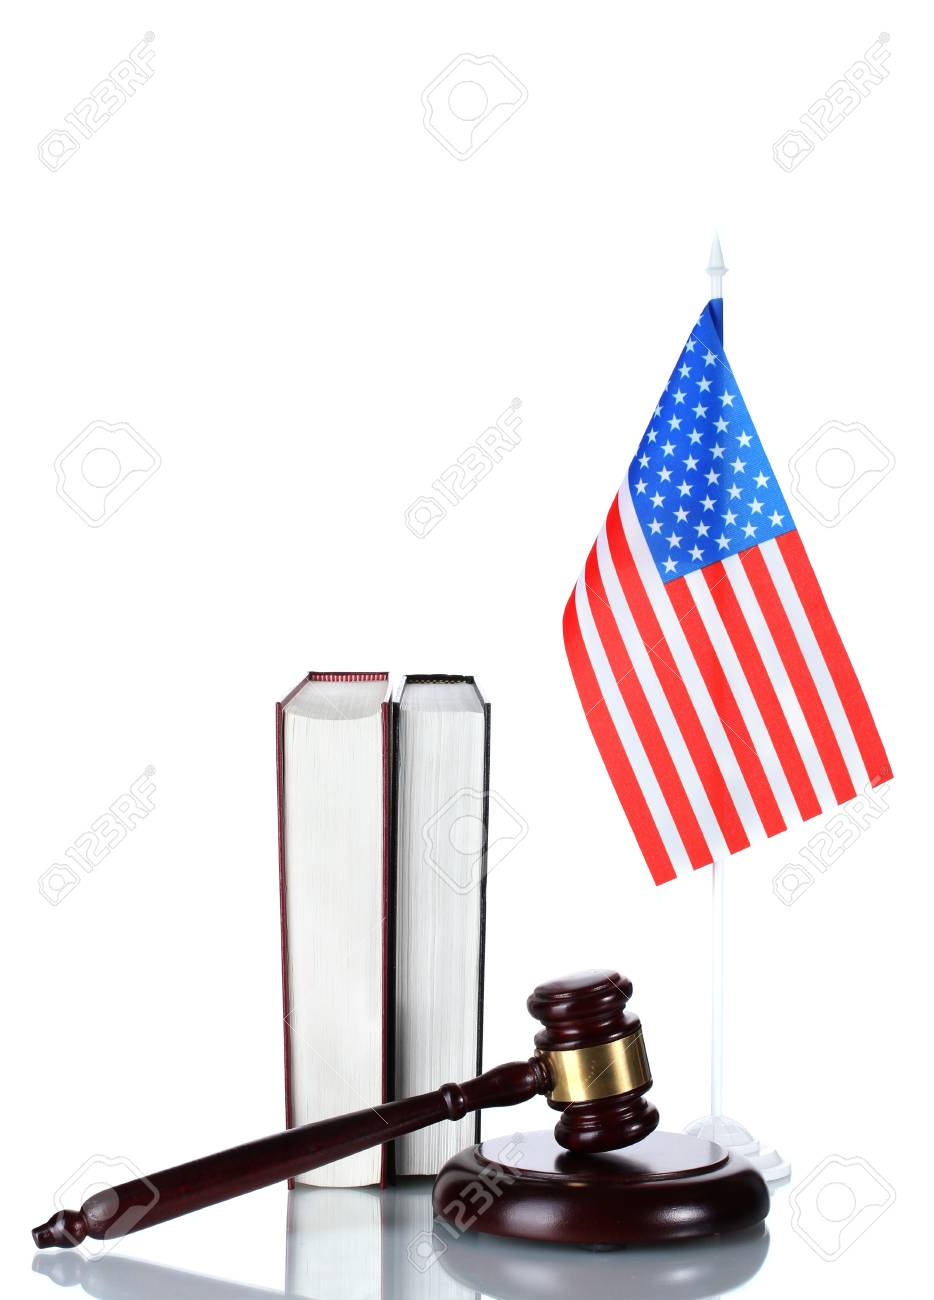 judge gavel, books and american flag isolated on white Stock Photo - 13223314